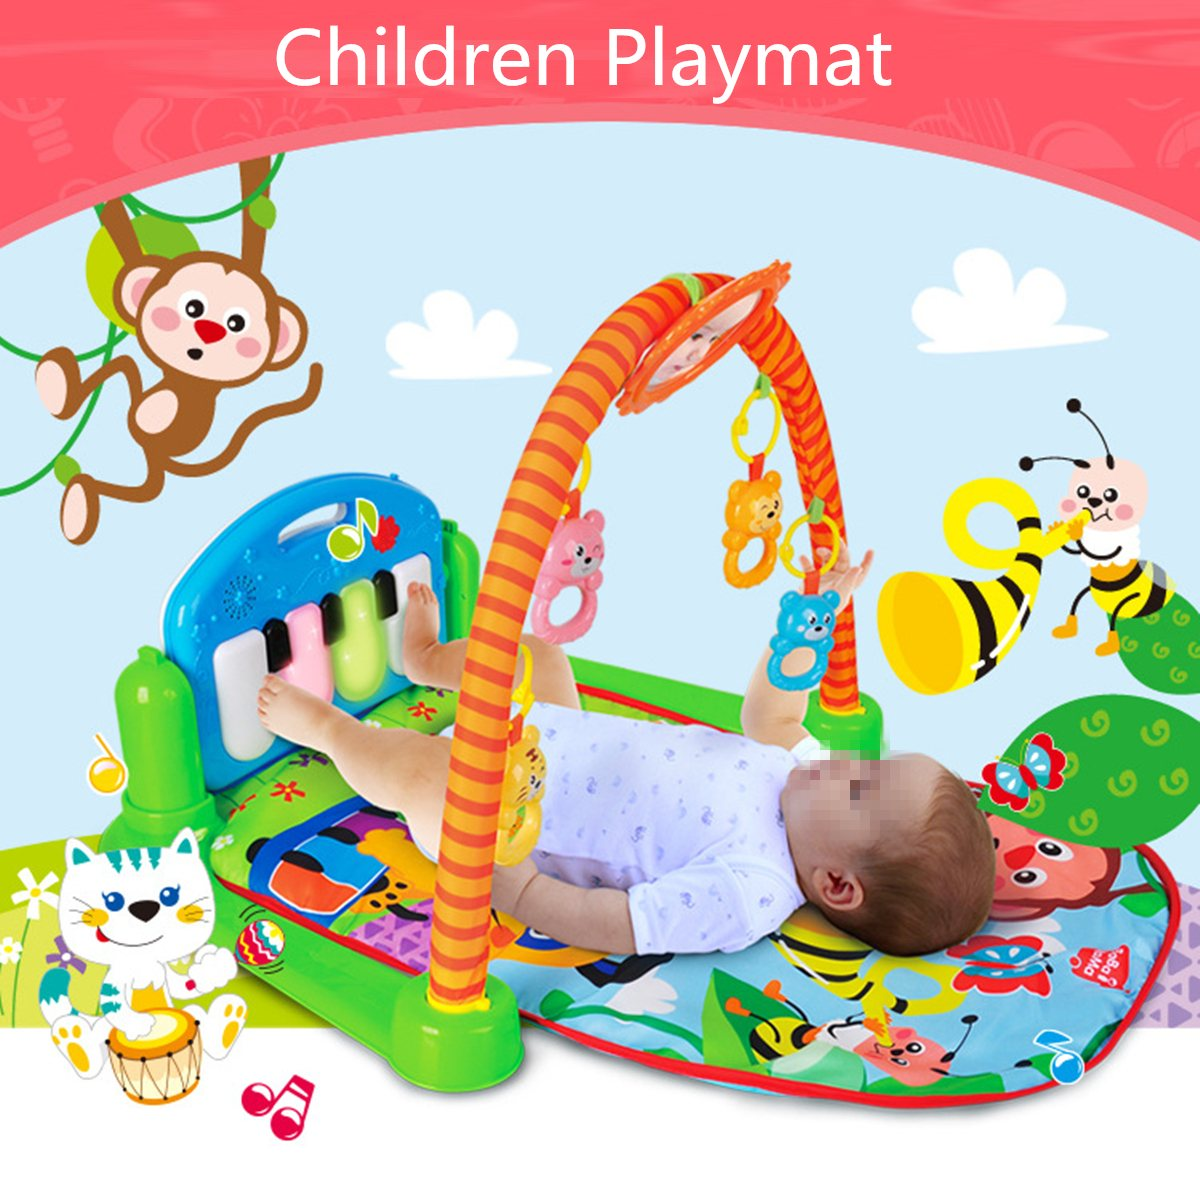 3 In 1 Rainforest Musical Lullaby Baby Activity Playmat Gym Toy Soft Play Mat Baby Infant